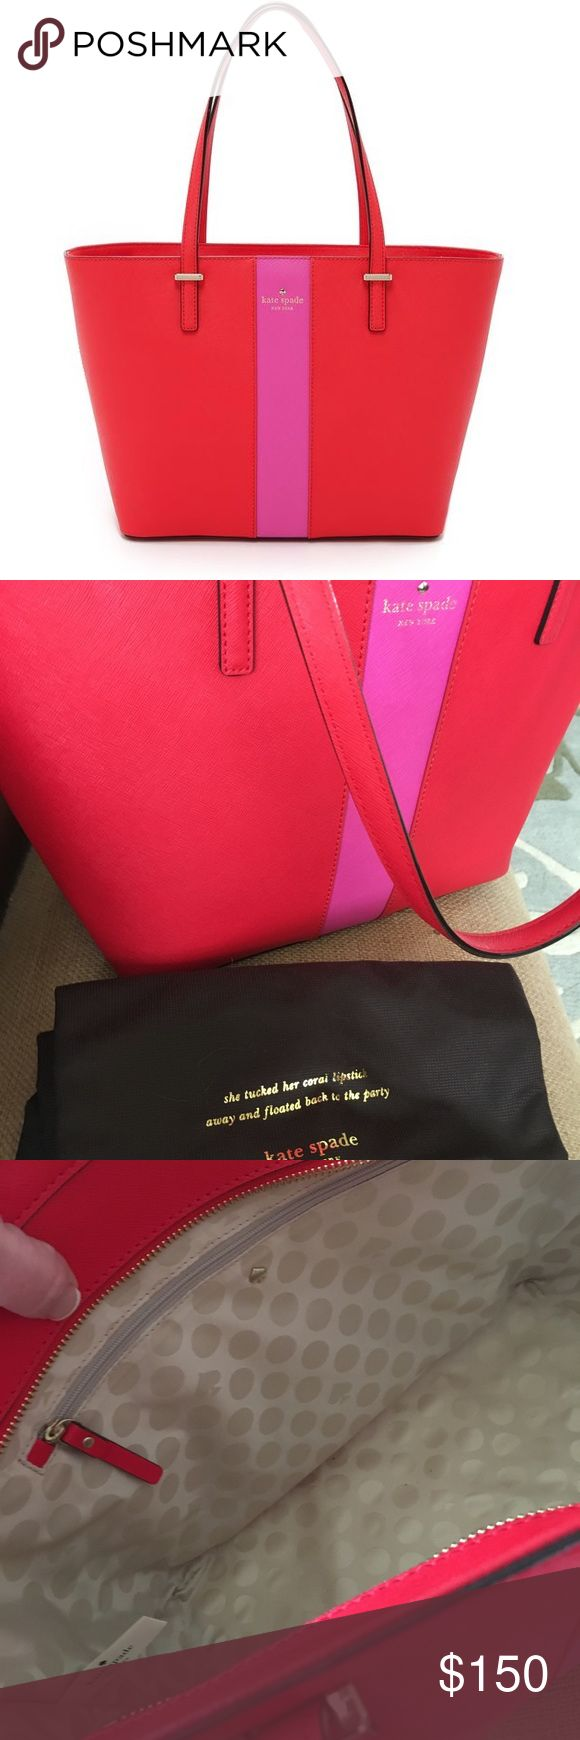 Kate Spade Leather Red and Pink Striped Purse Negotiable Pricing Ask About Bundles and Discounts  Clean & Smoke Free Packaged With Love and Care  Fast Response Time kate spade Bags Totes